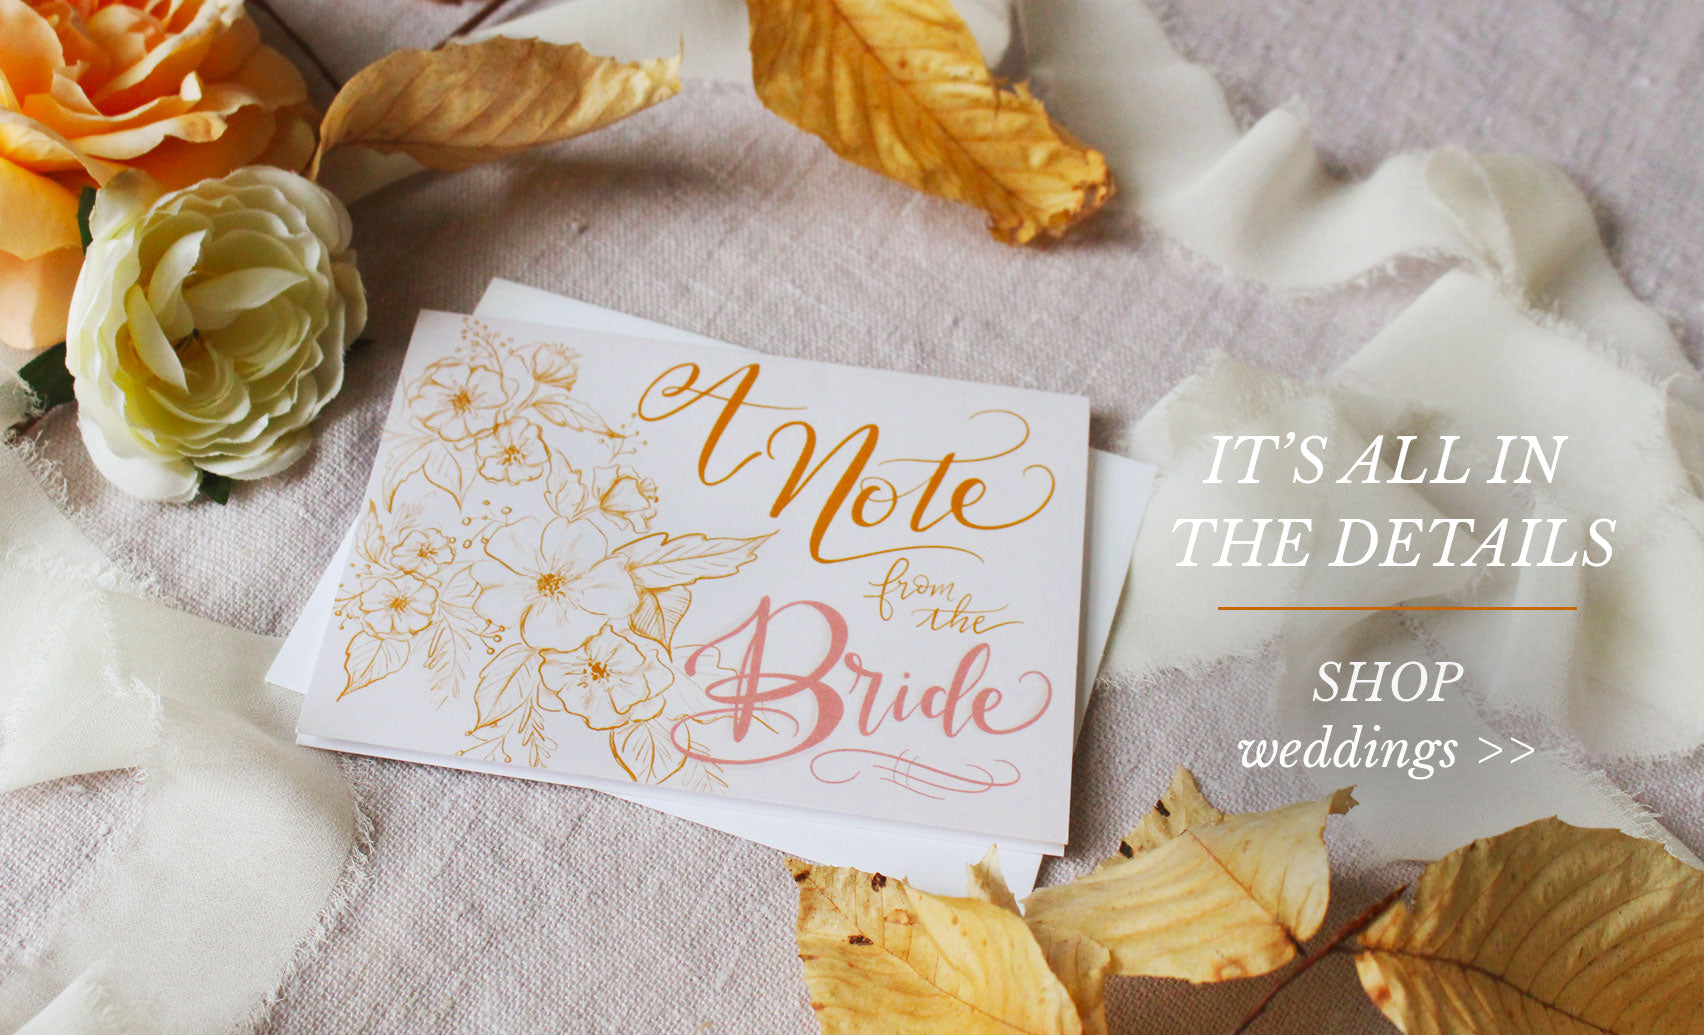 A Note From the Bride Note Cards - It's All in the Details